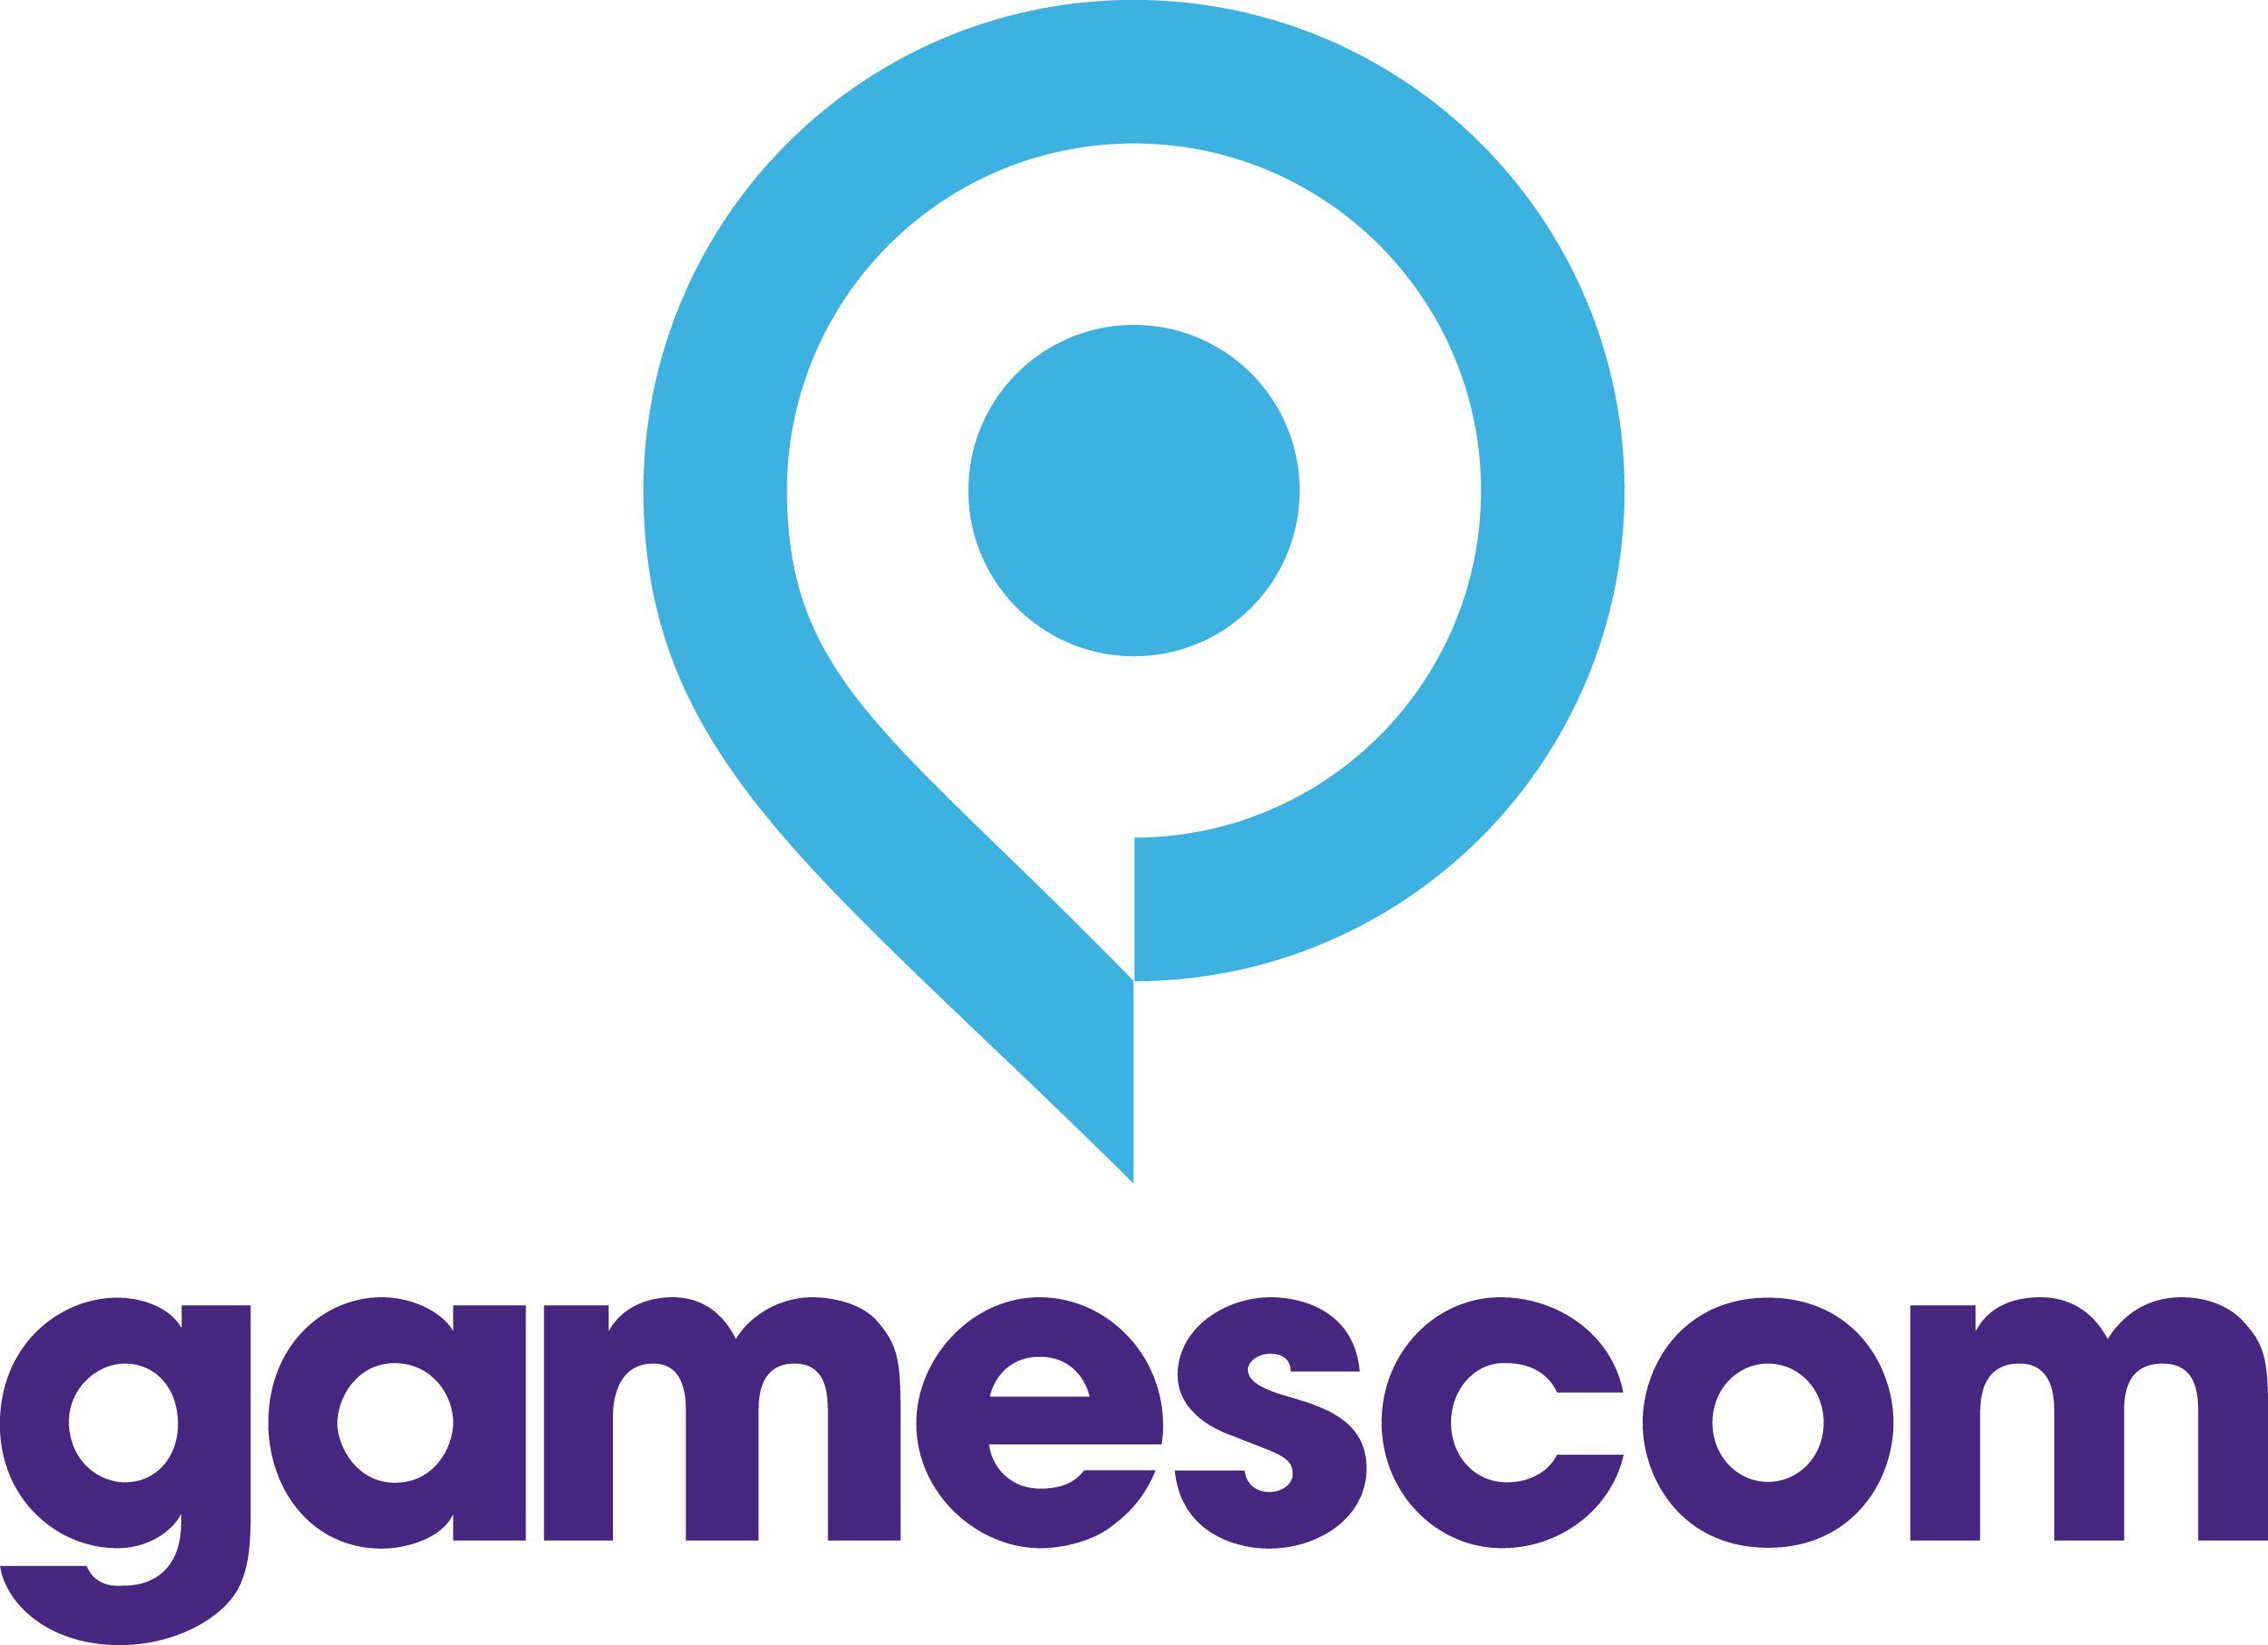 gamescom Award 2016 with New Categories